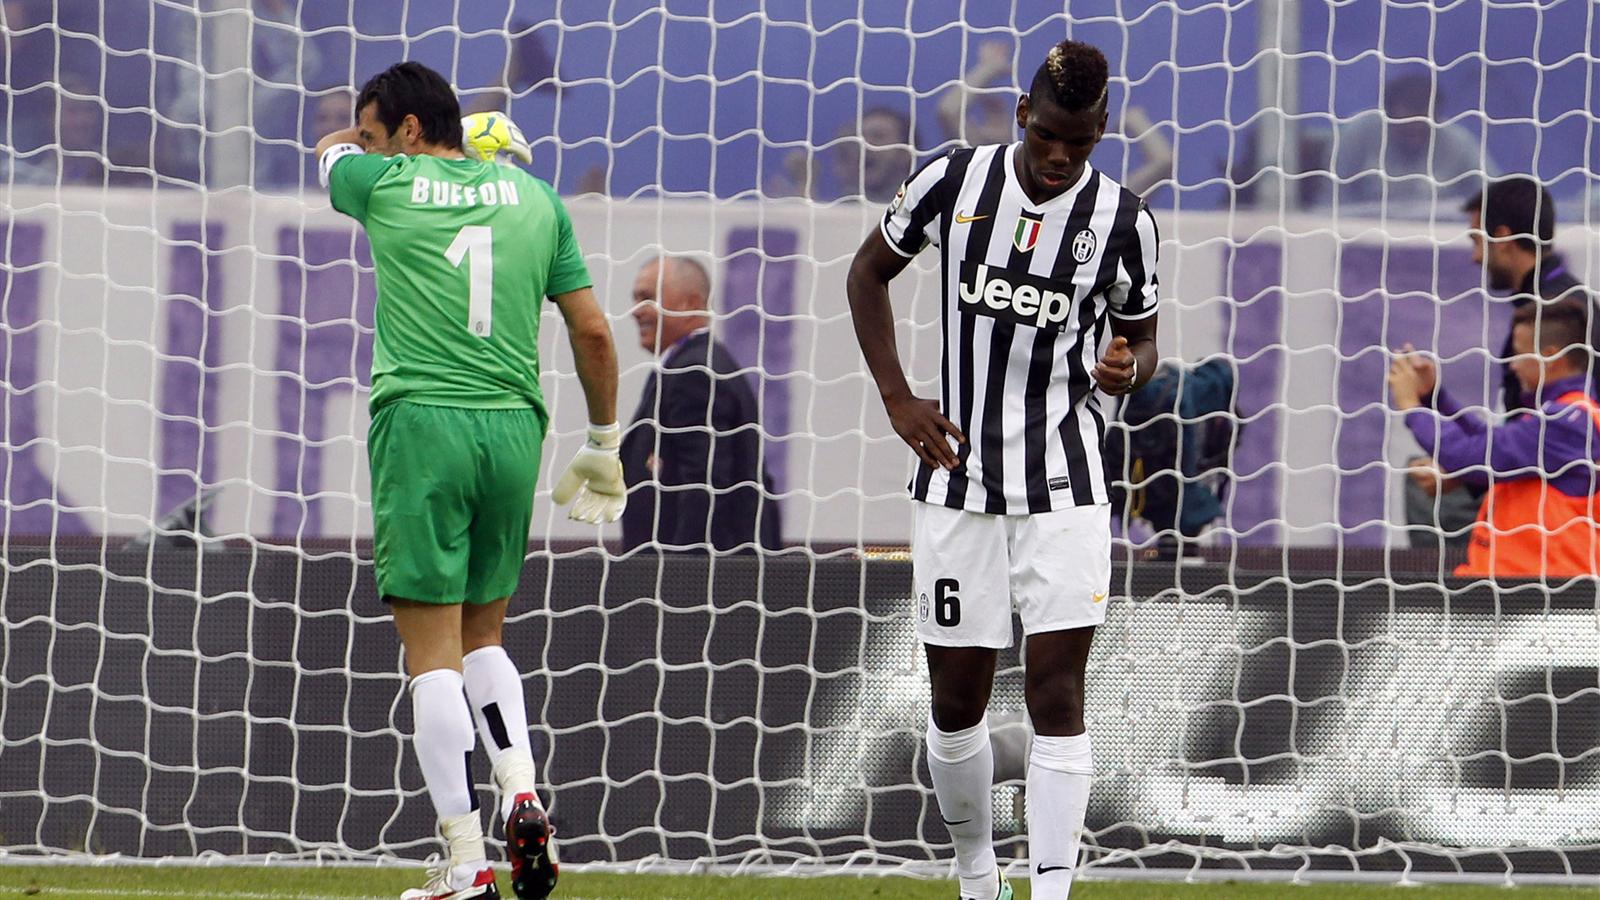 Juventus' goalkeeper Gianluigi Buffon (L) and Paul Pogba react after Fiorentina's Joaquin Sanchez (not pictured) scored during their Italian Serie A soccer match at the Artemio Franchi stadium in Florence October 20, 2013. (Reuters)